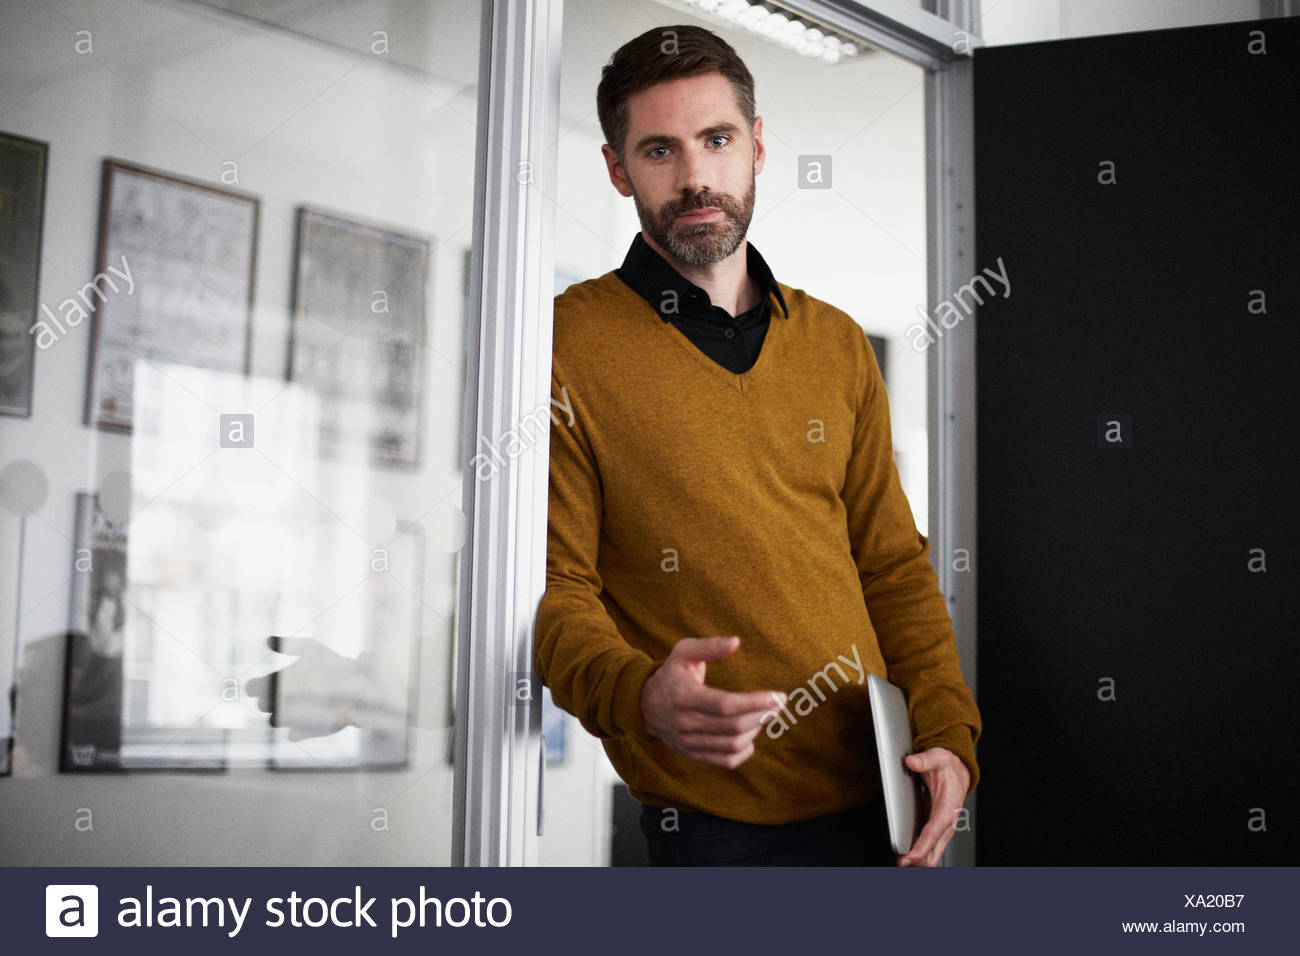 Casual businessman in doorway - Stock Image